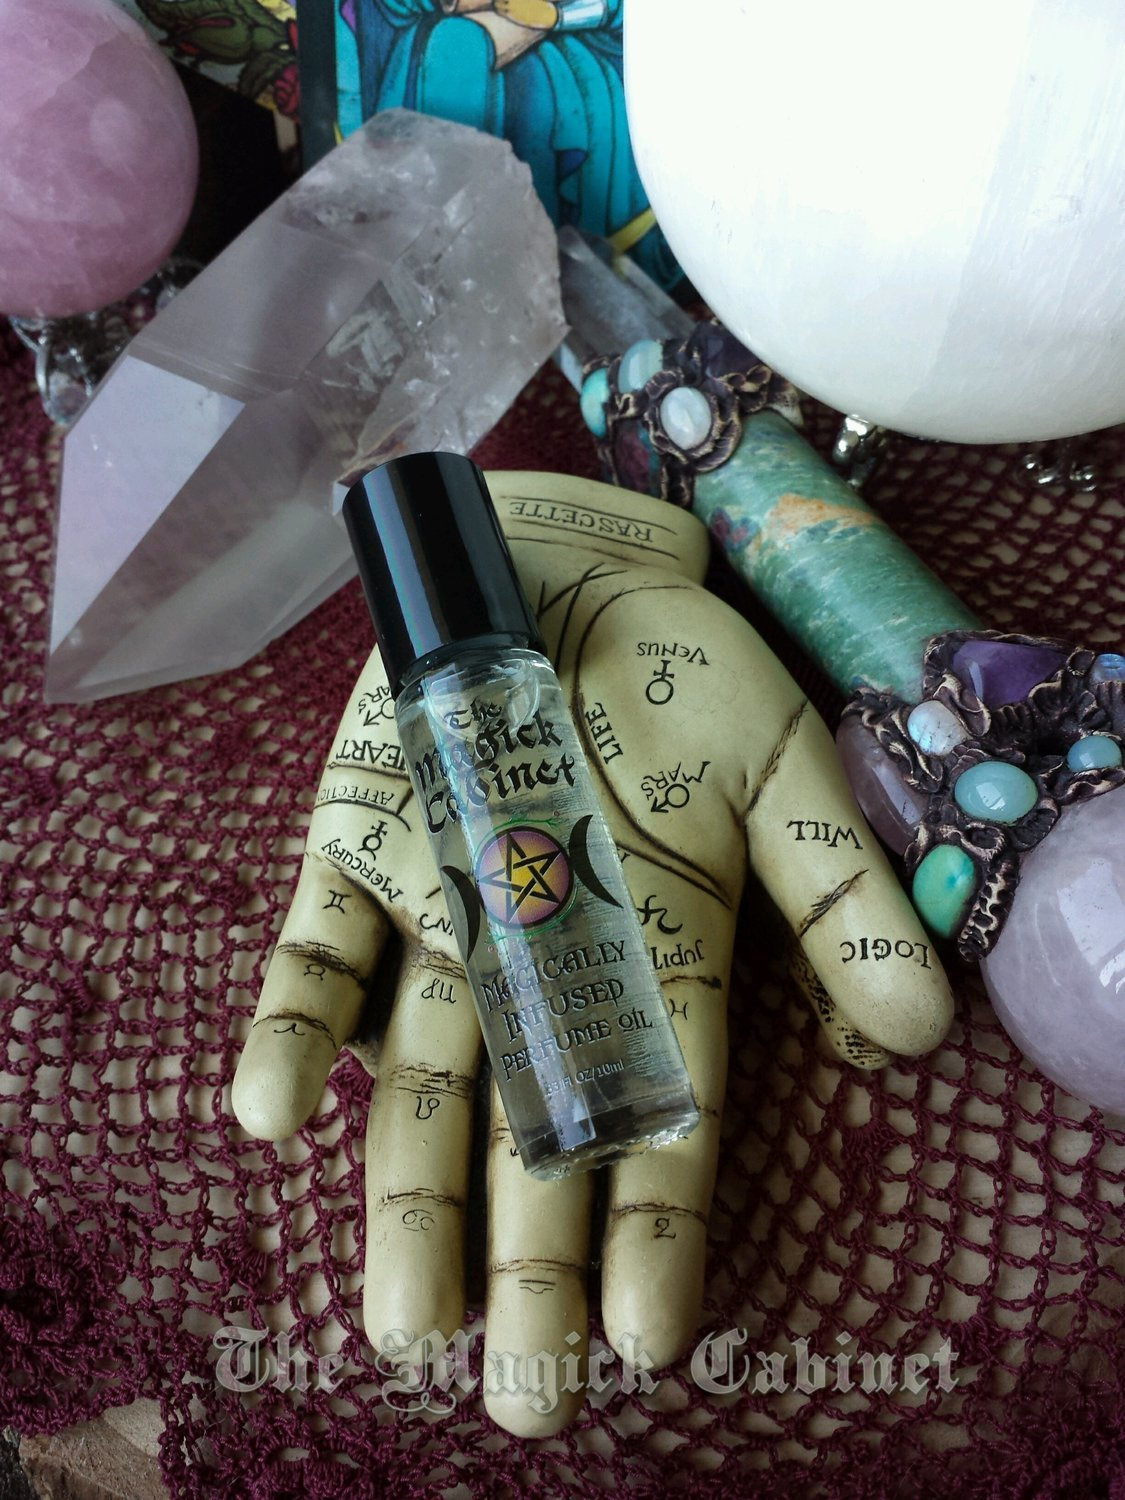 Psychic Perfume to Enlighten your Intuitive Nature, Floral and Sensual  Perfume to enhance your Psychic Powers, Magical Perfume for Magical People